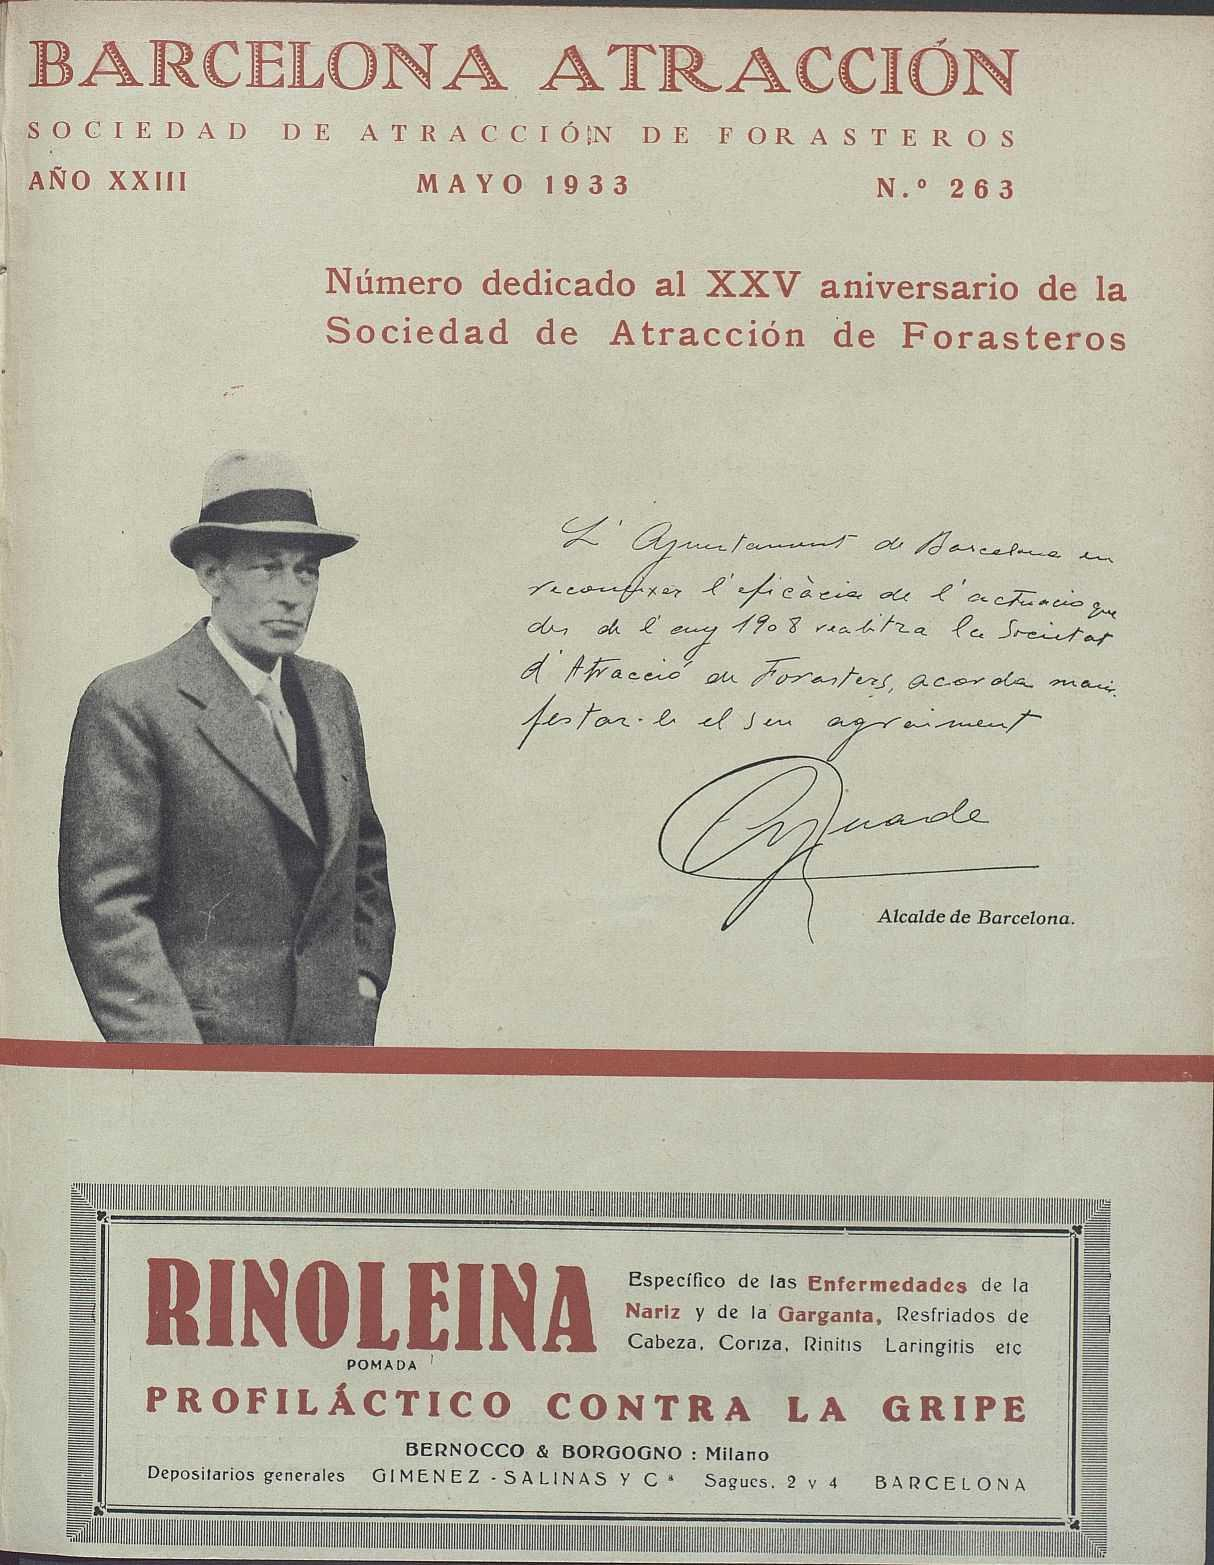 AHCB, Periodicals Library,  Barcelona attraction, May 1933